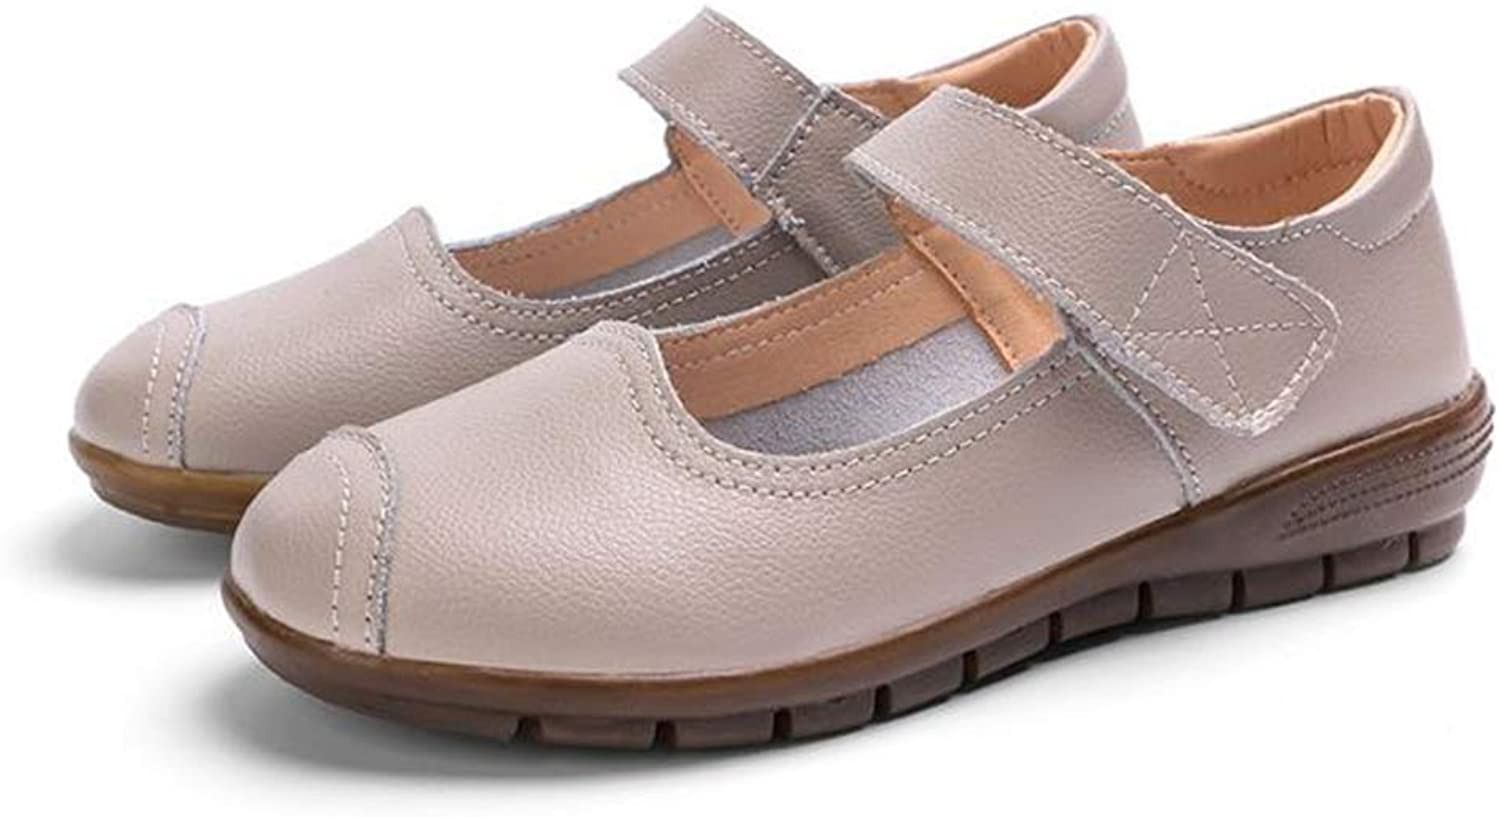 Unyielding1 Women's Leather Slip-on Loafers Moccasins Casual Flat Driving Boat shoes